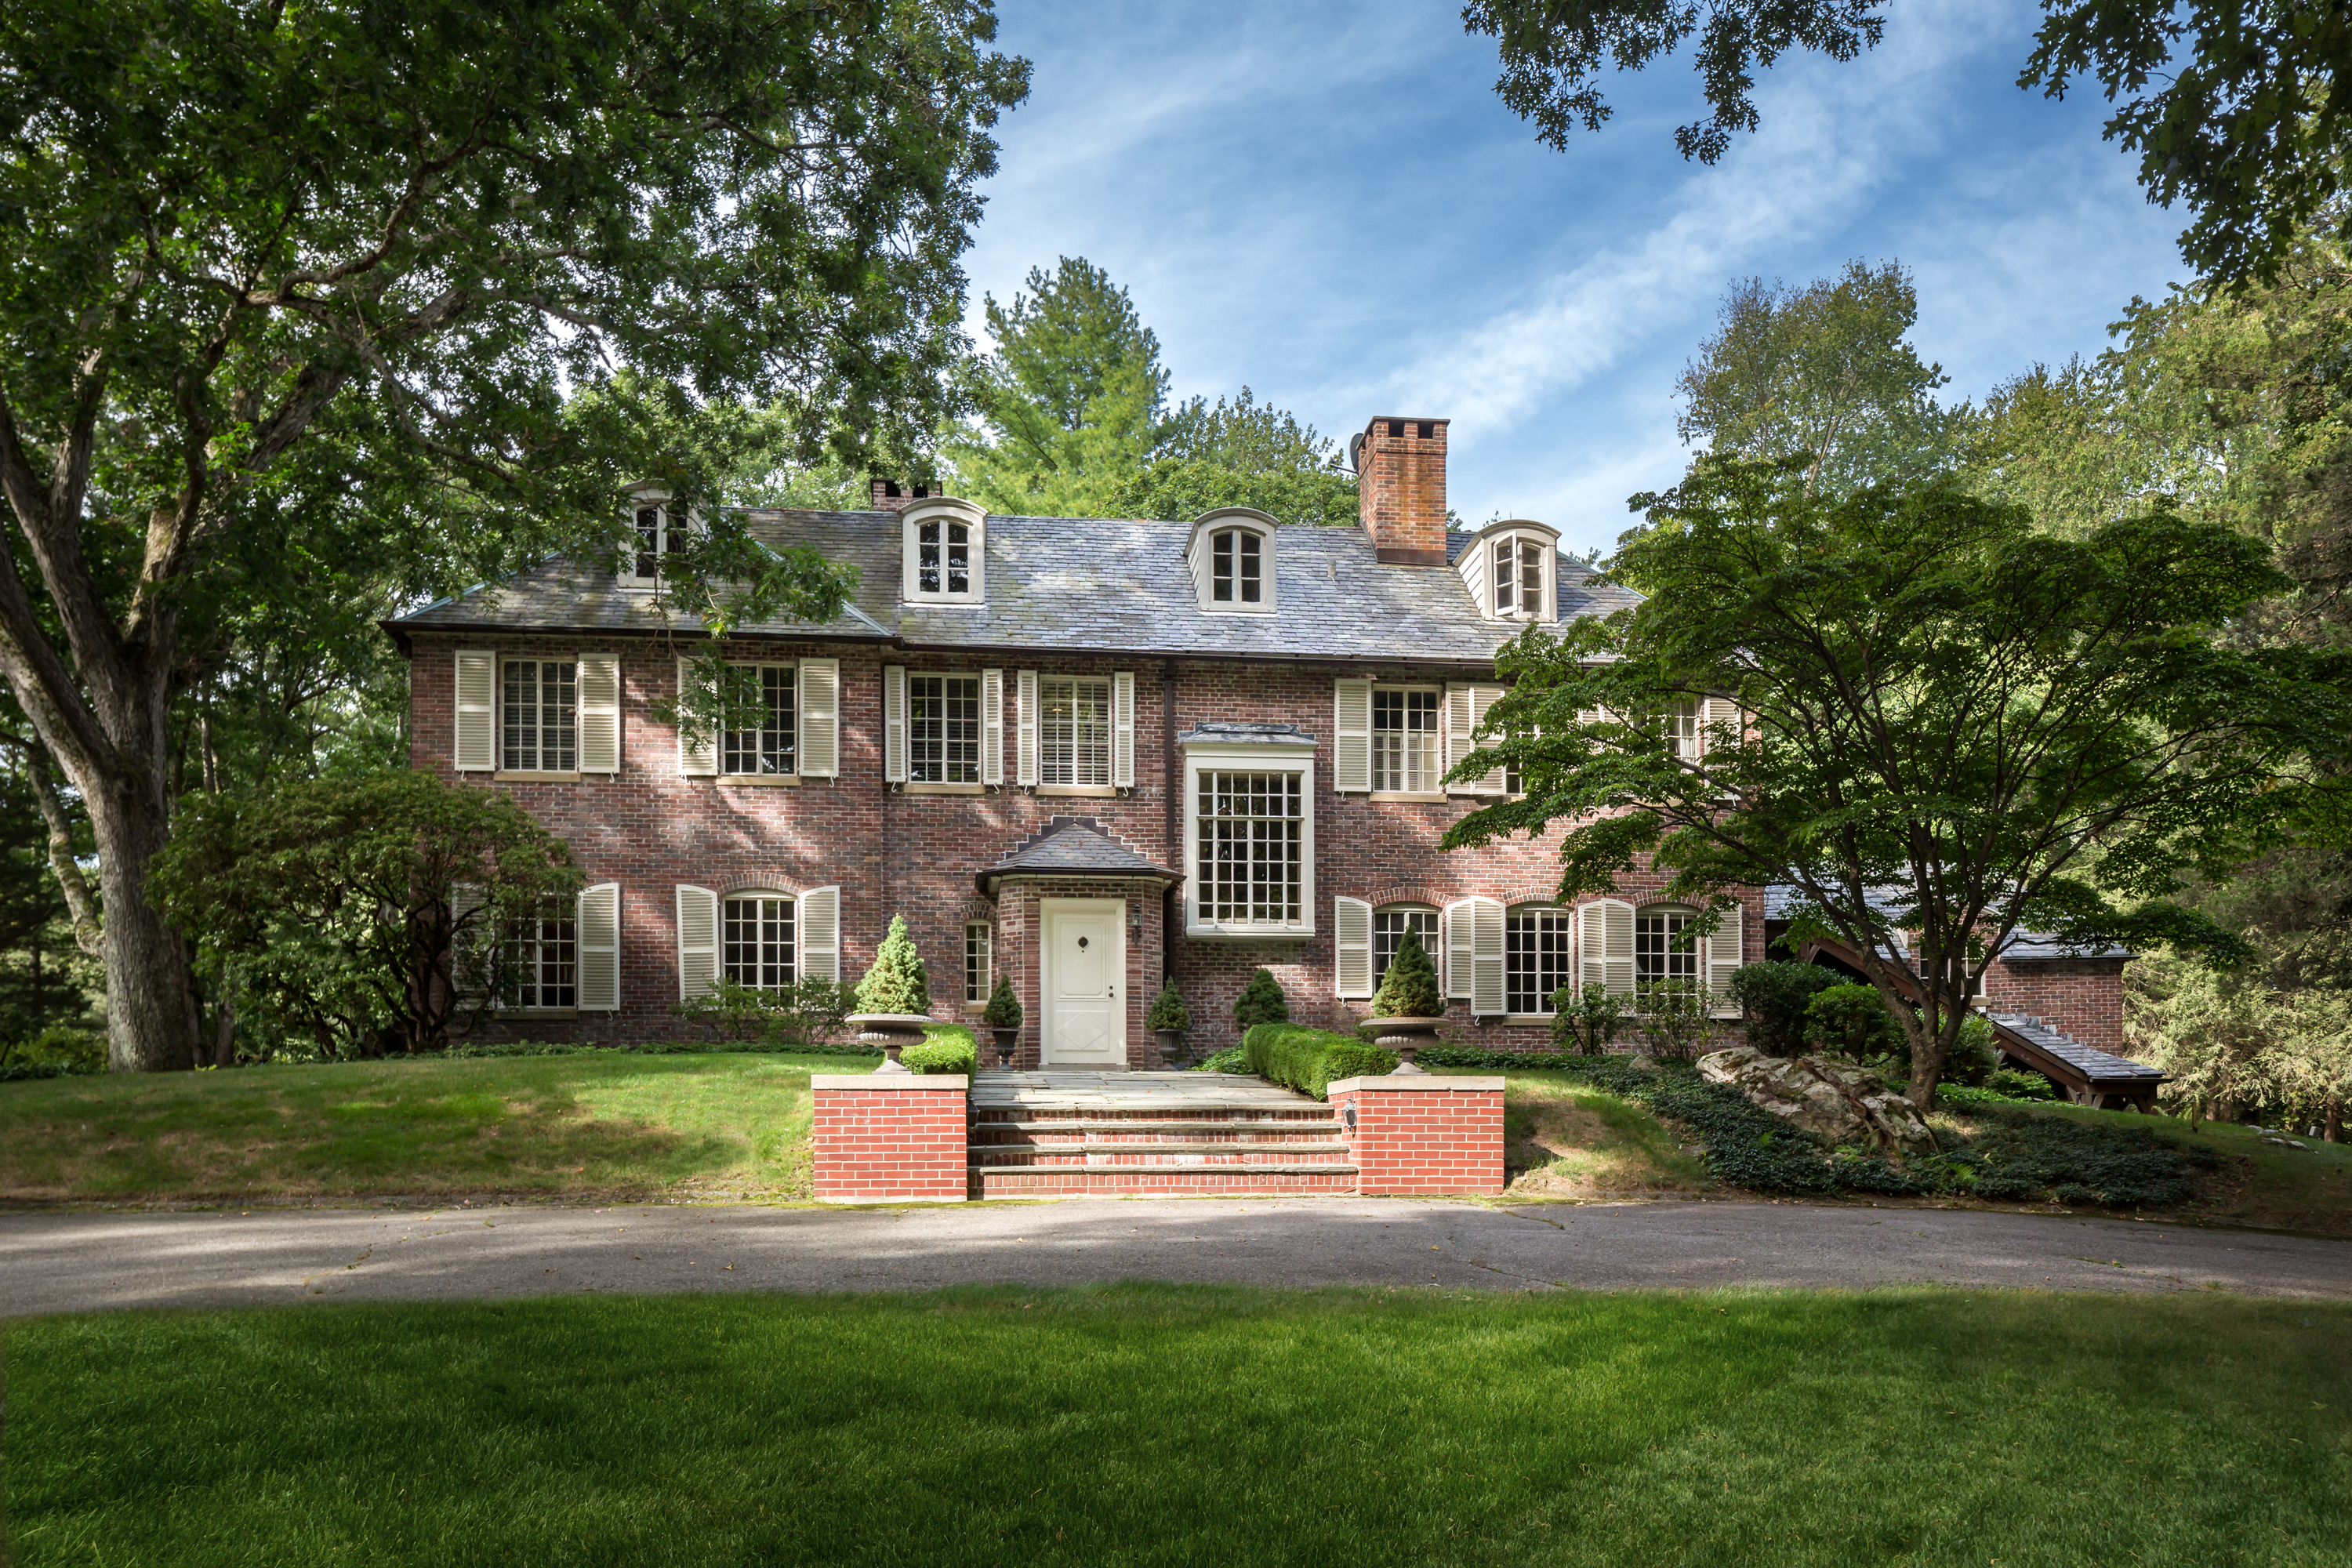 Single Family Home for Sale at Cedar Knoll 360 Greenley Road New Canaan, Connecticut, 06840 United States